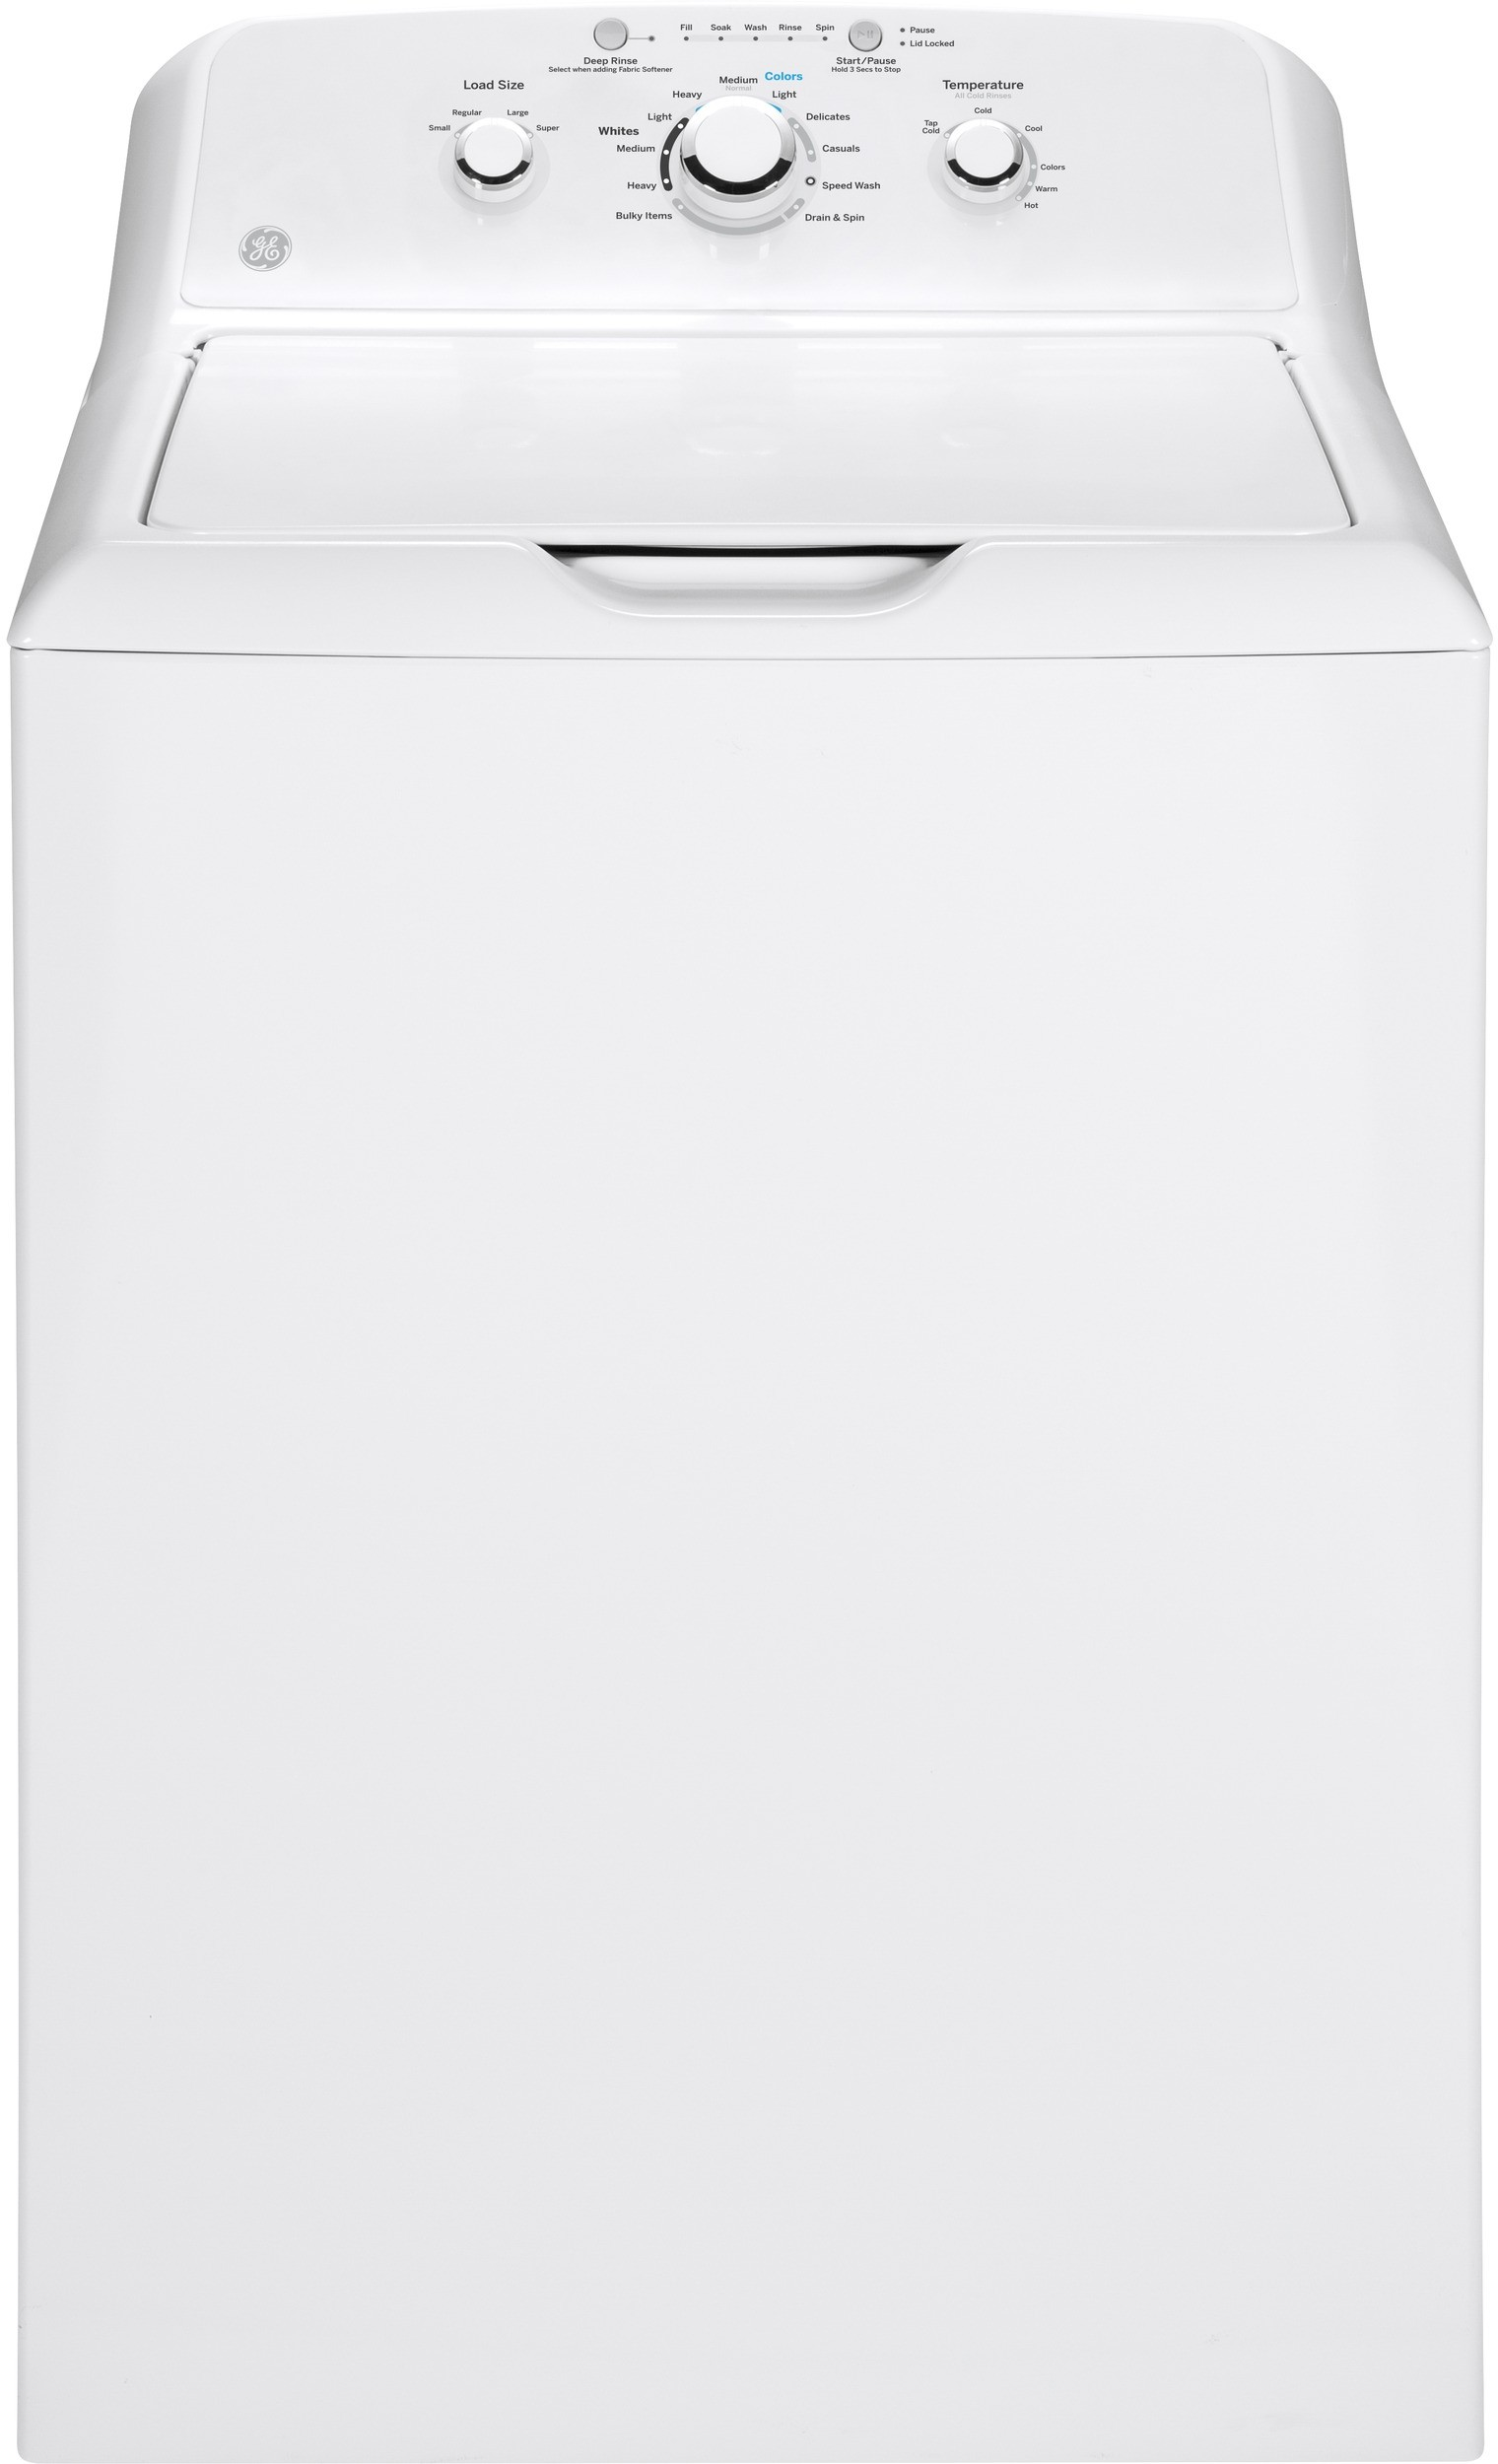 The best top load washer with agitator - The Best Top Load Washer With Agitator 46